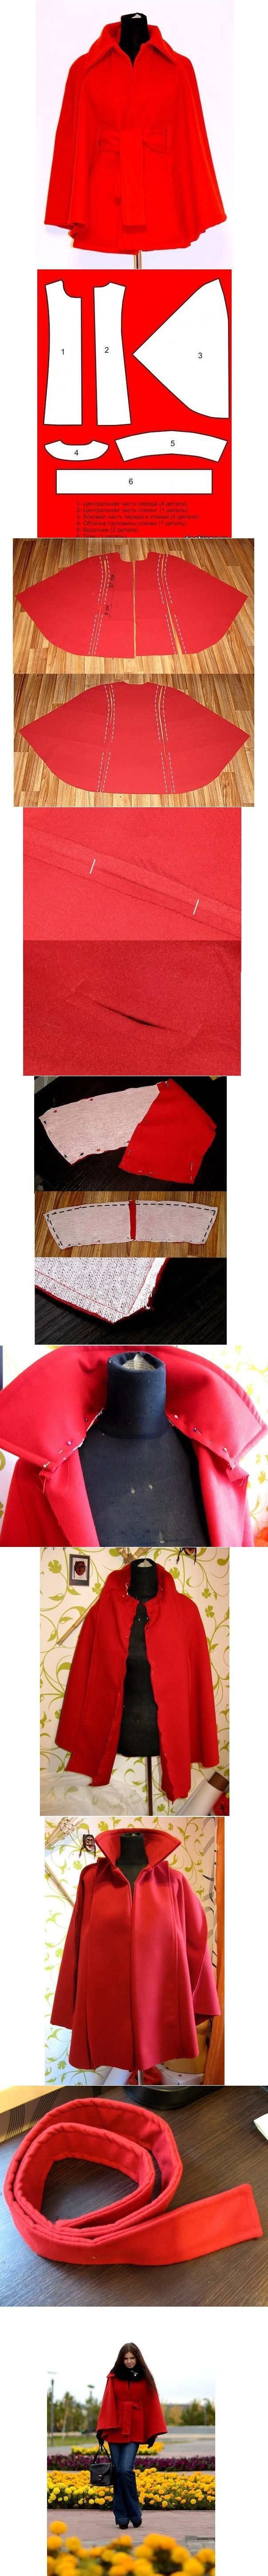 DIY Clothes DIY Refashion  DIY Fashion Cape